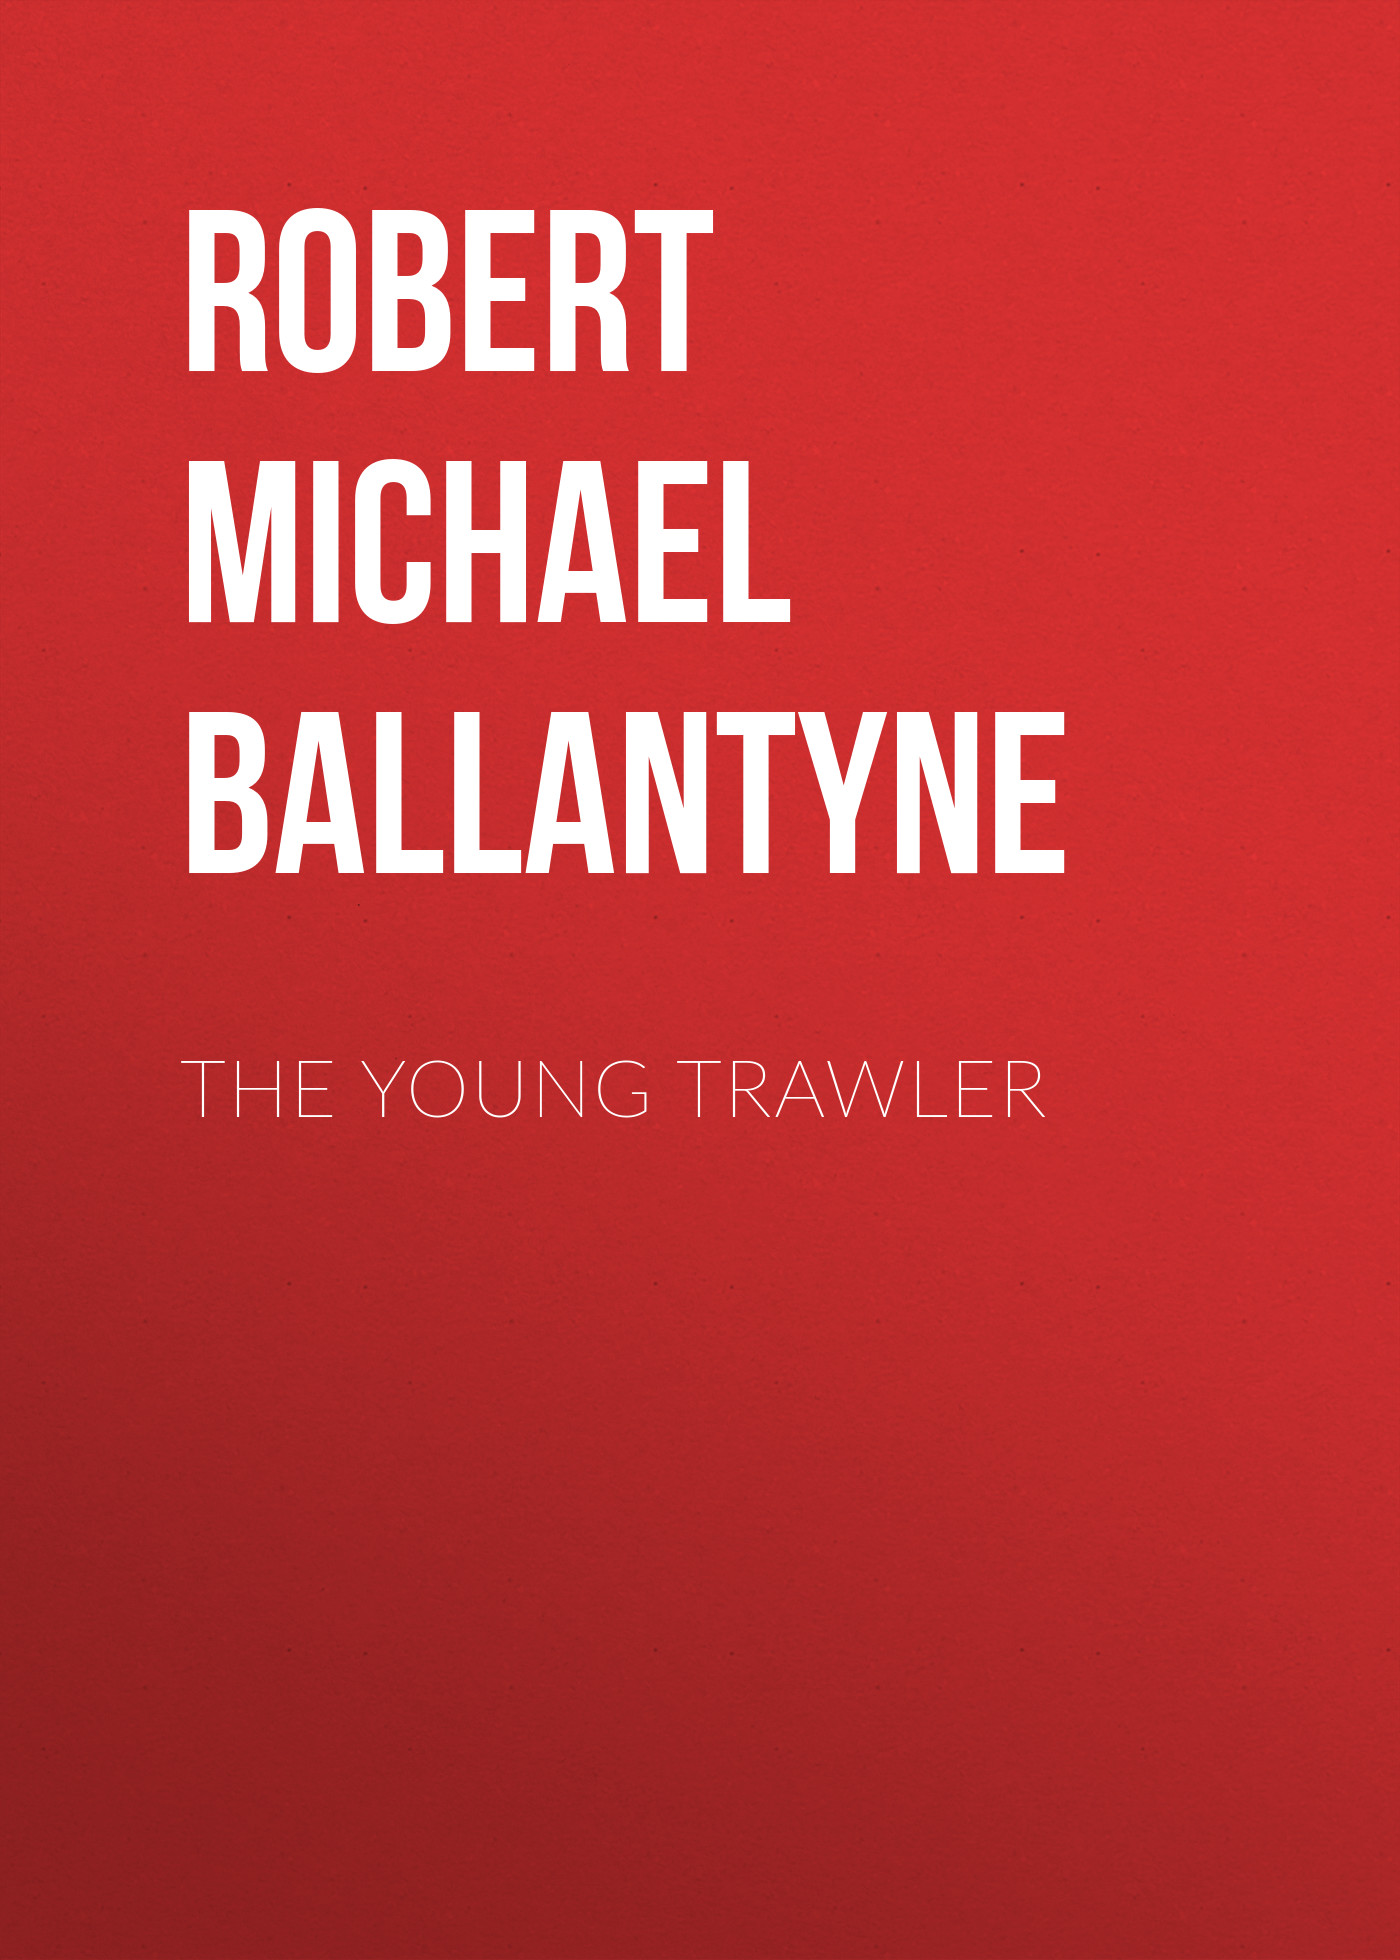 лучшая цена Robert Michael Ballantyne The Young Trawler